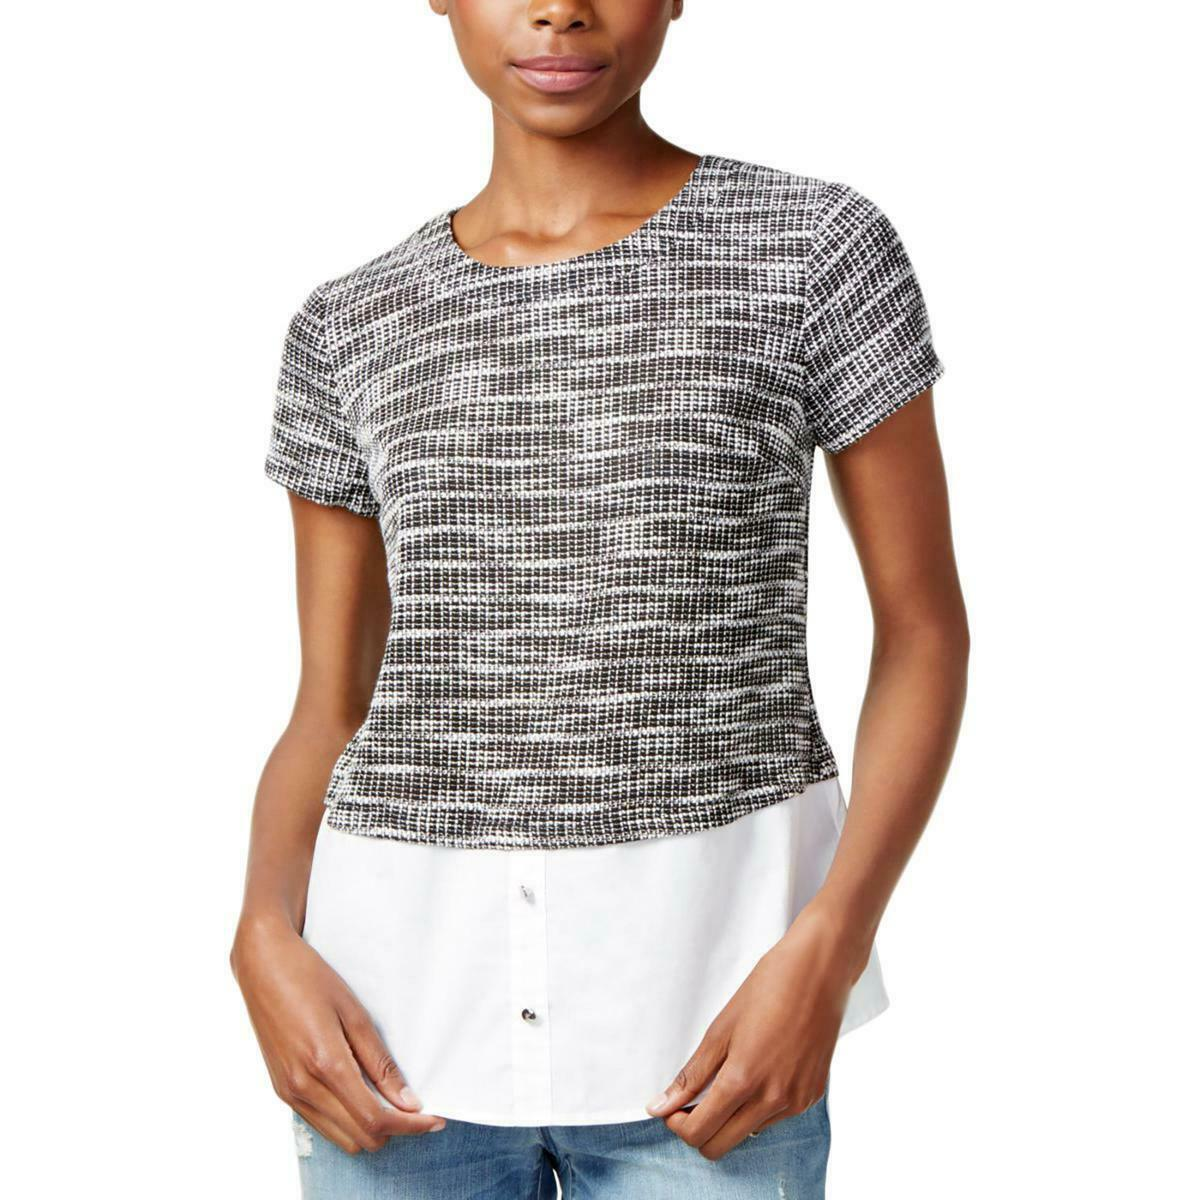 Primary image for Maison Jules Women's Printed Contrast Layered Look Casual Top Black $49 Size S